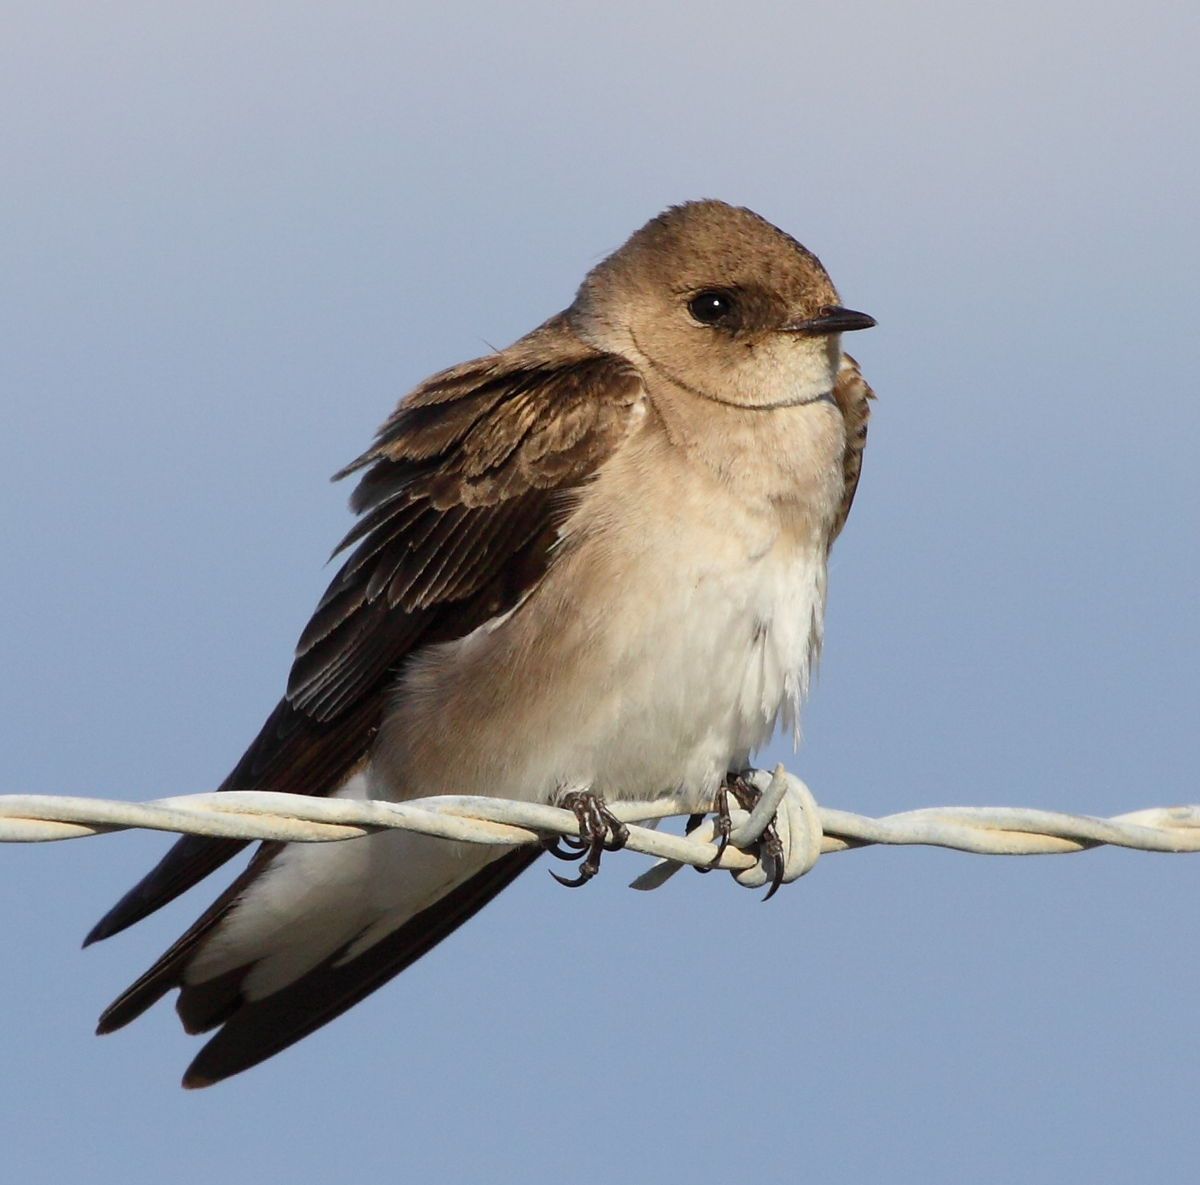 Northern rough-winged swallow - Wikipedia